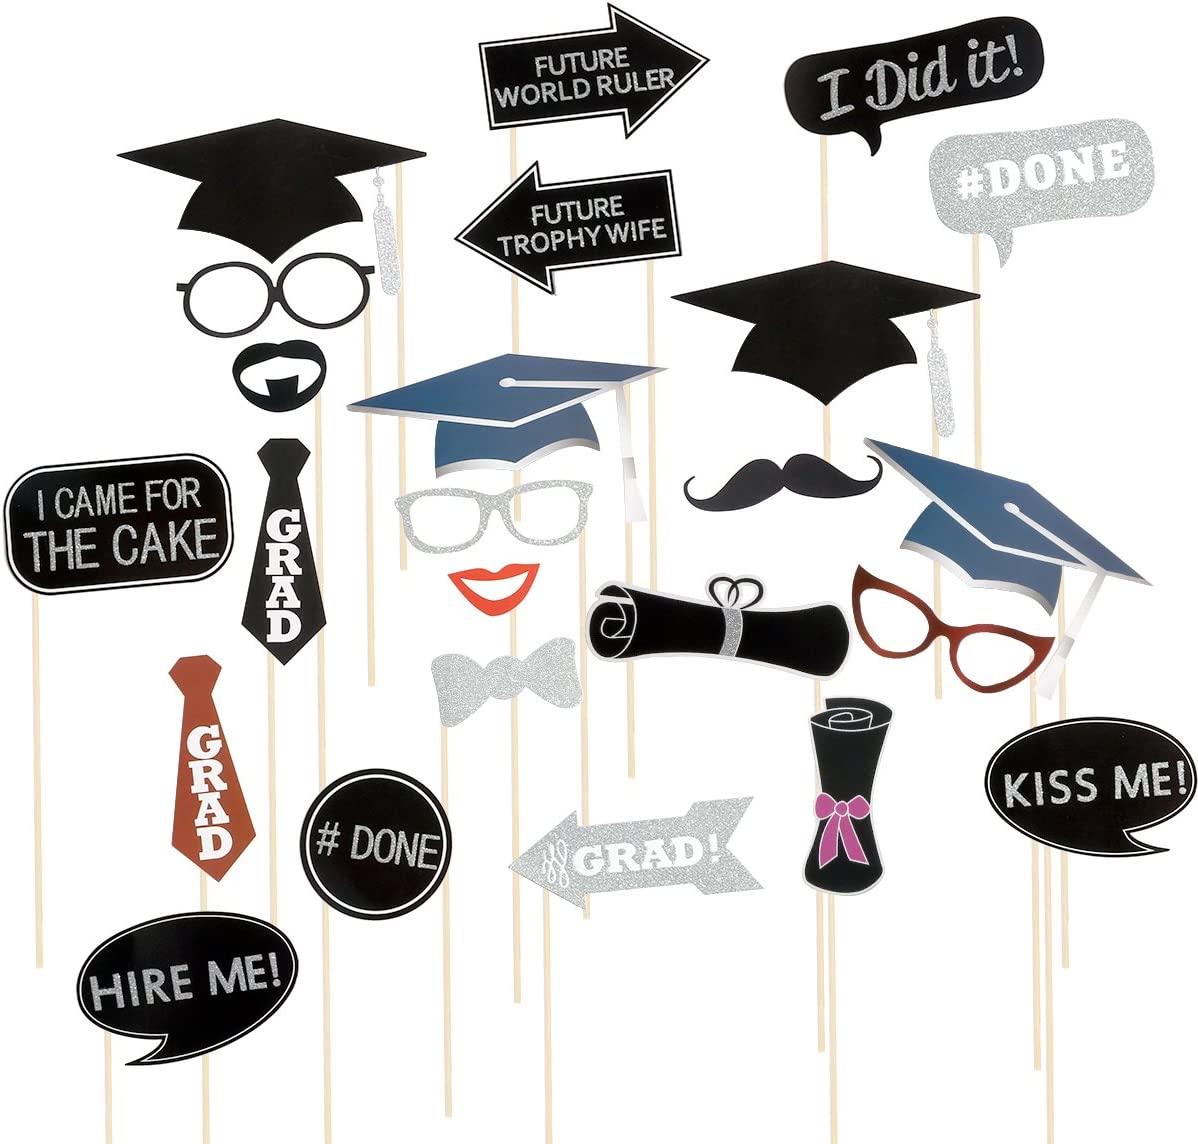 Graduation Photo Booth Props Tinksky 24 Kit Party Favor for Graduation Party with Mustache Hats Bowler Bowties on Sticks Glasses Lips